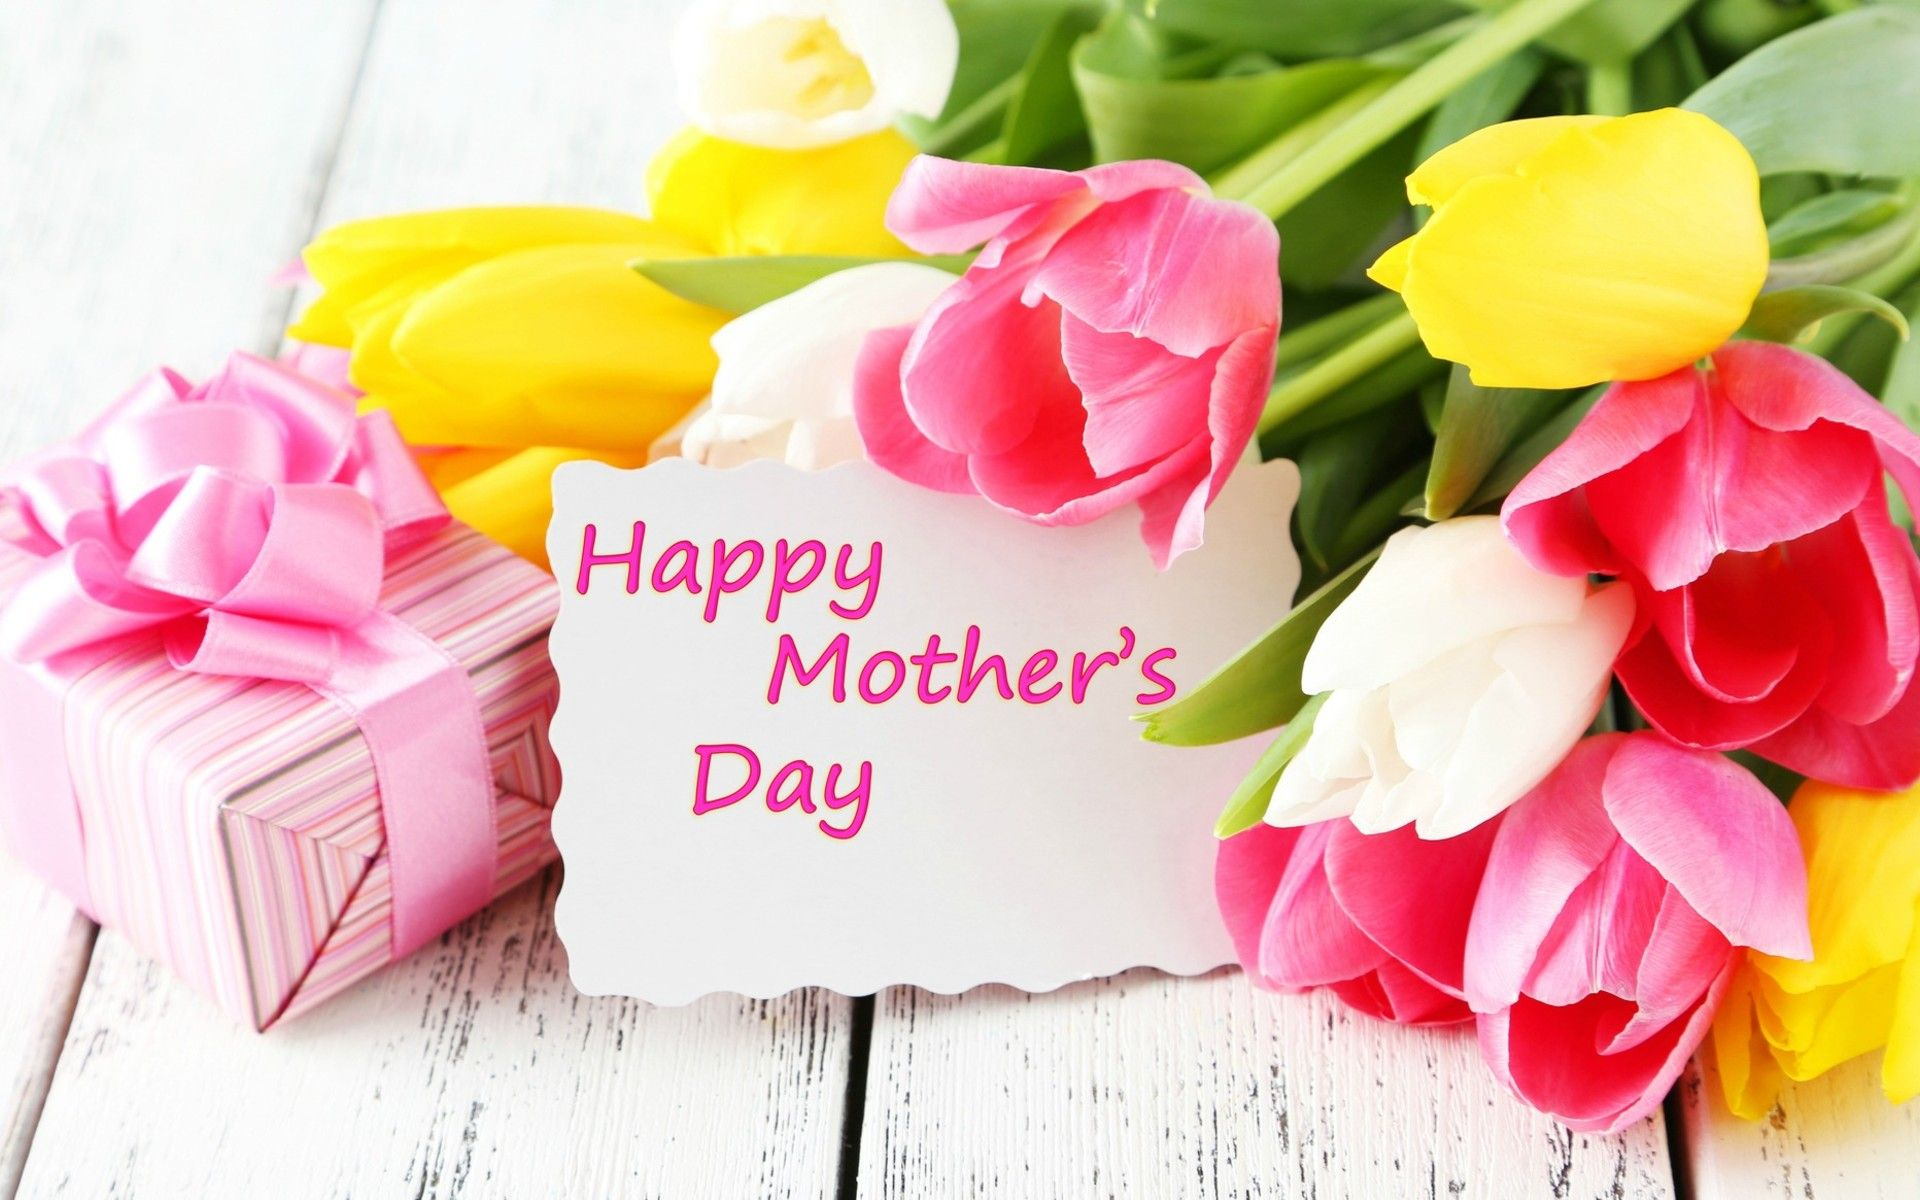 Mother's Day 2020 HD Wallpapers - Wallpaper Cave